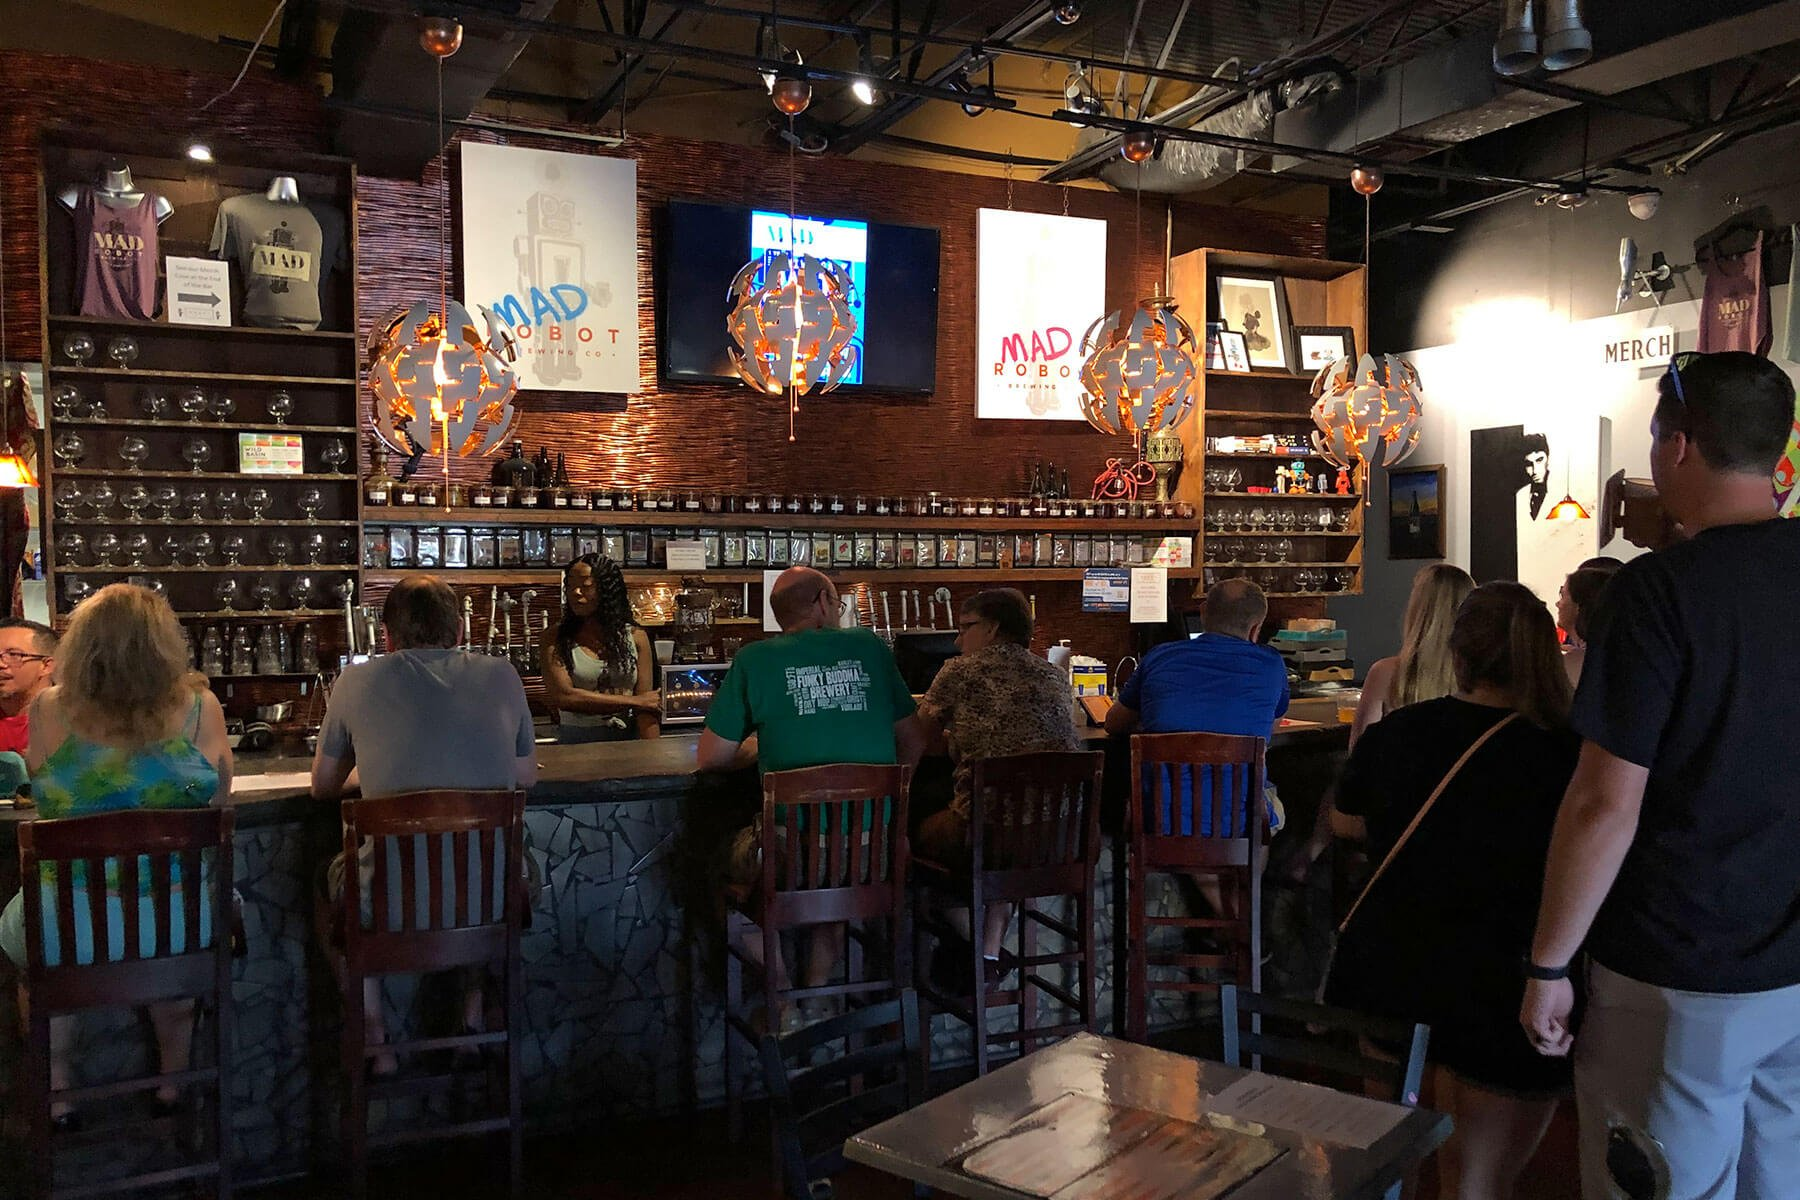 Inside the taproom at Mad Robot Brewing Co. in Boca Raton, Florida